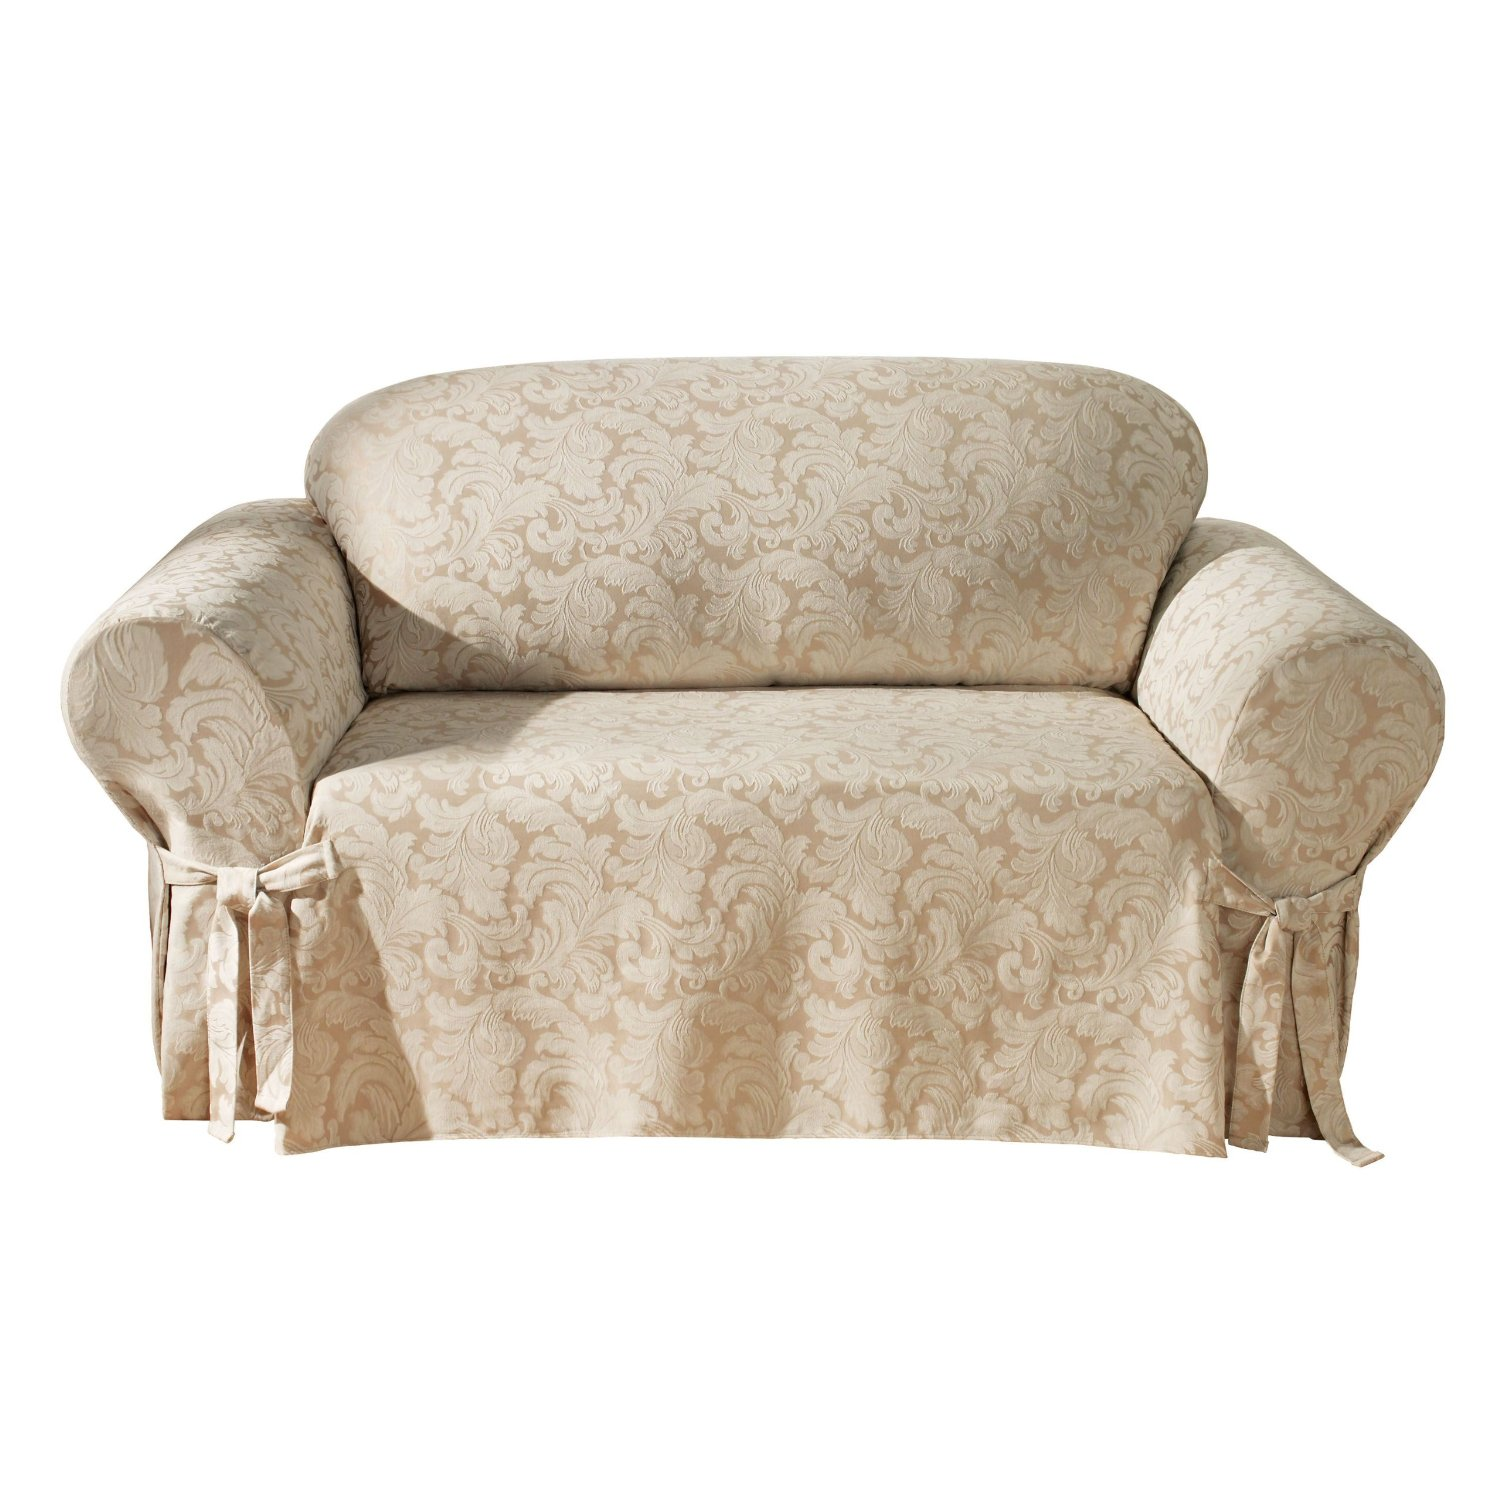 Couch And Chair Covers Furniture Mesmerizing Oversized Chair Slipcover For Home